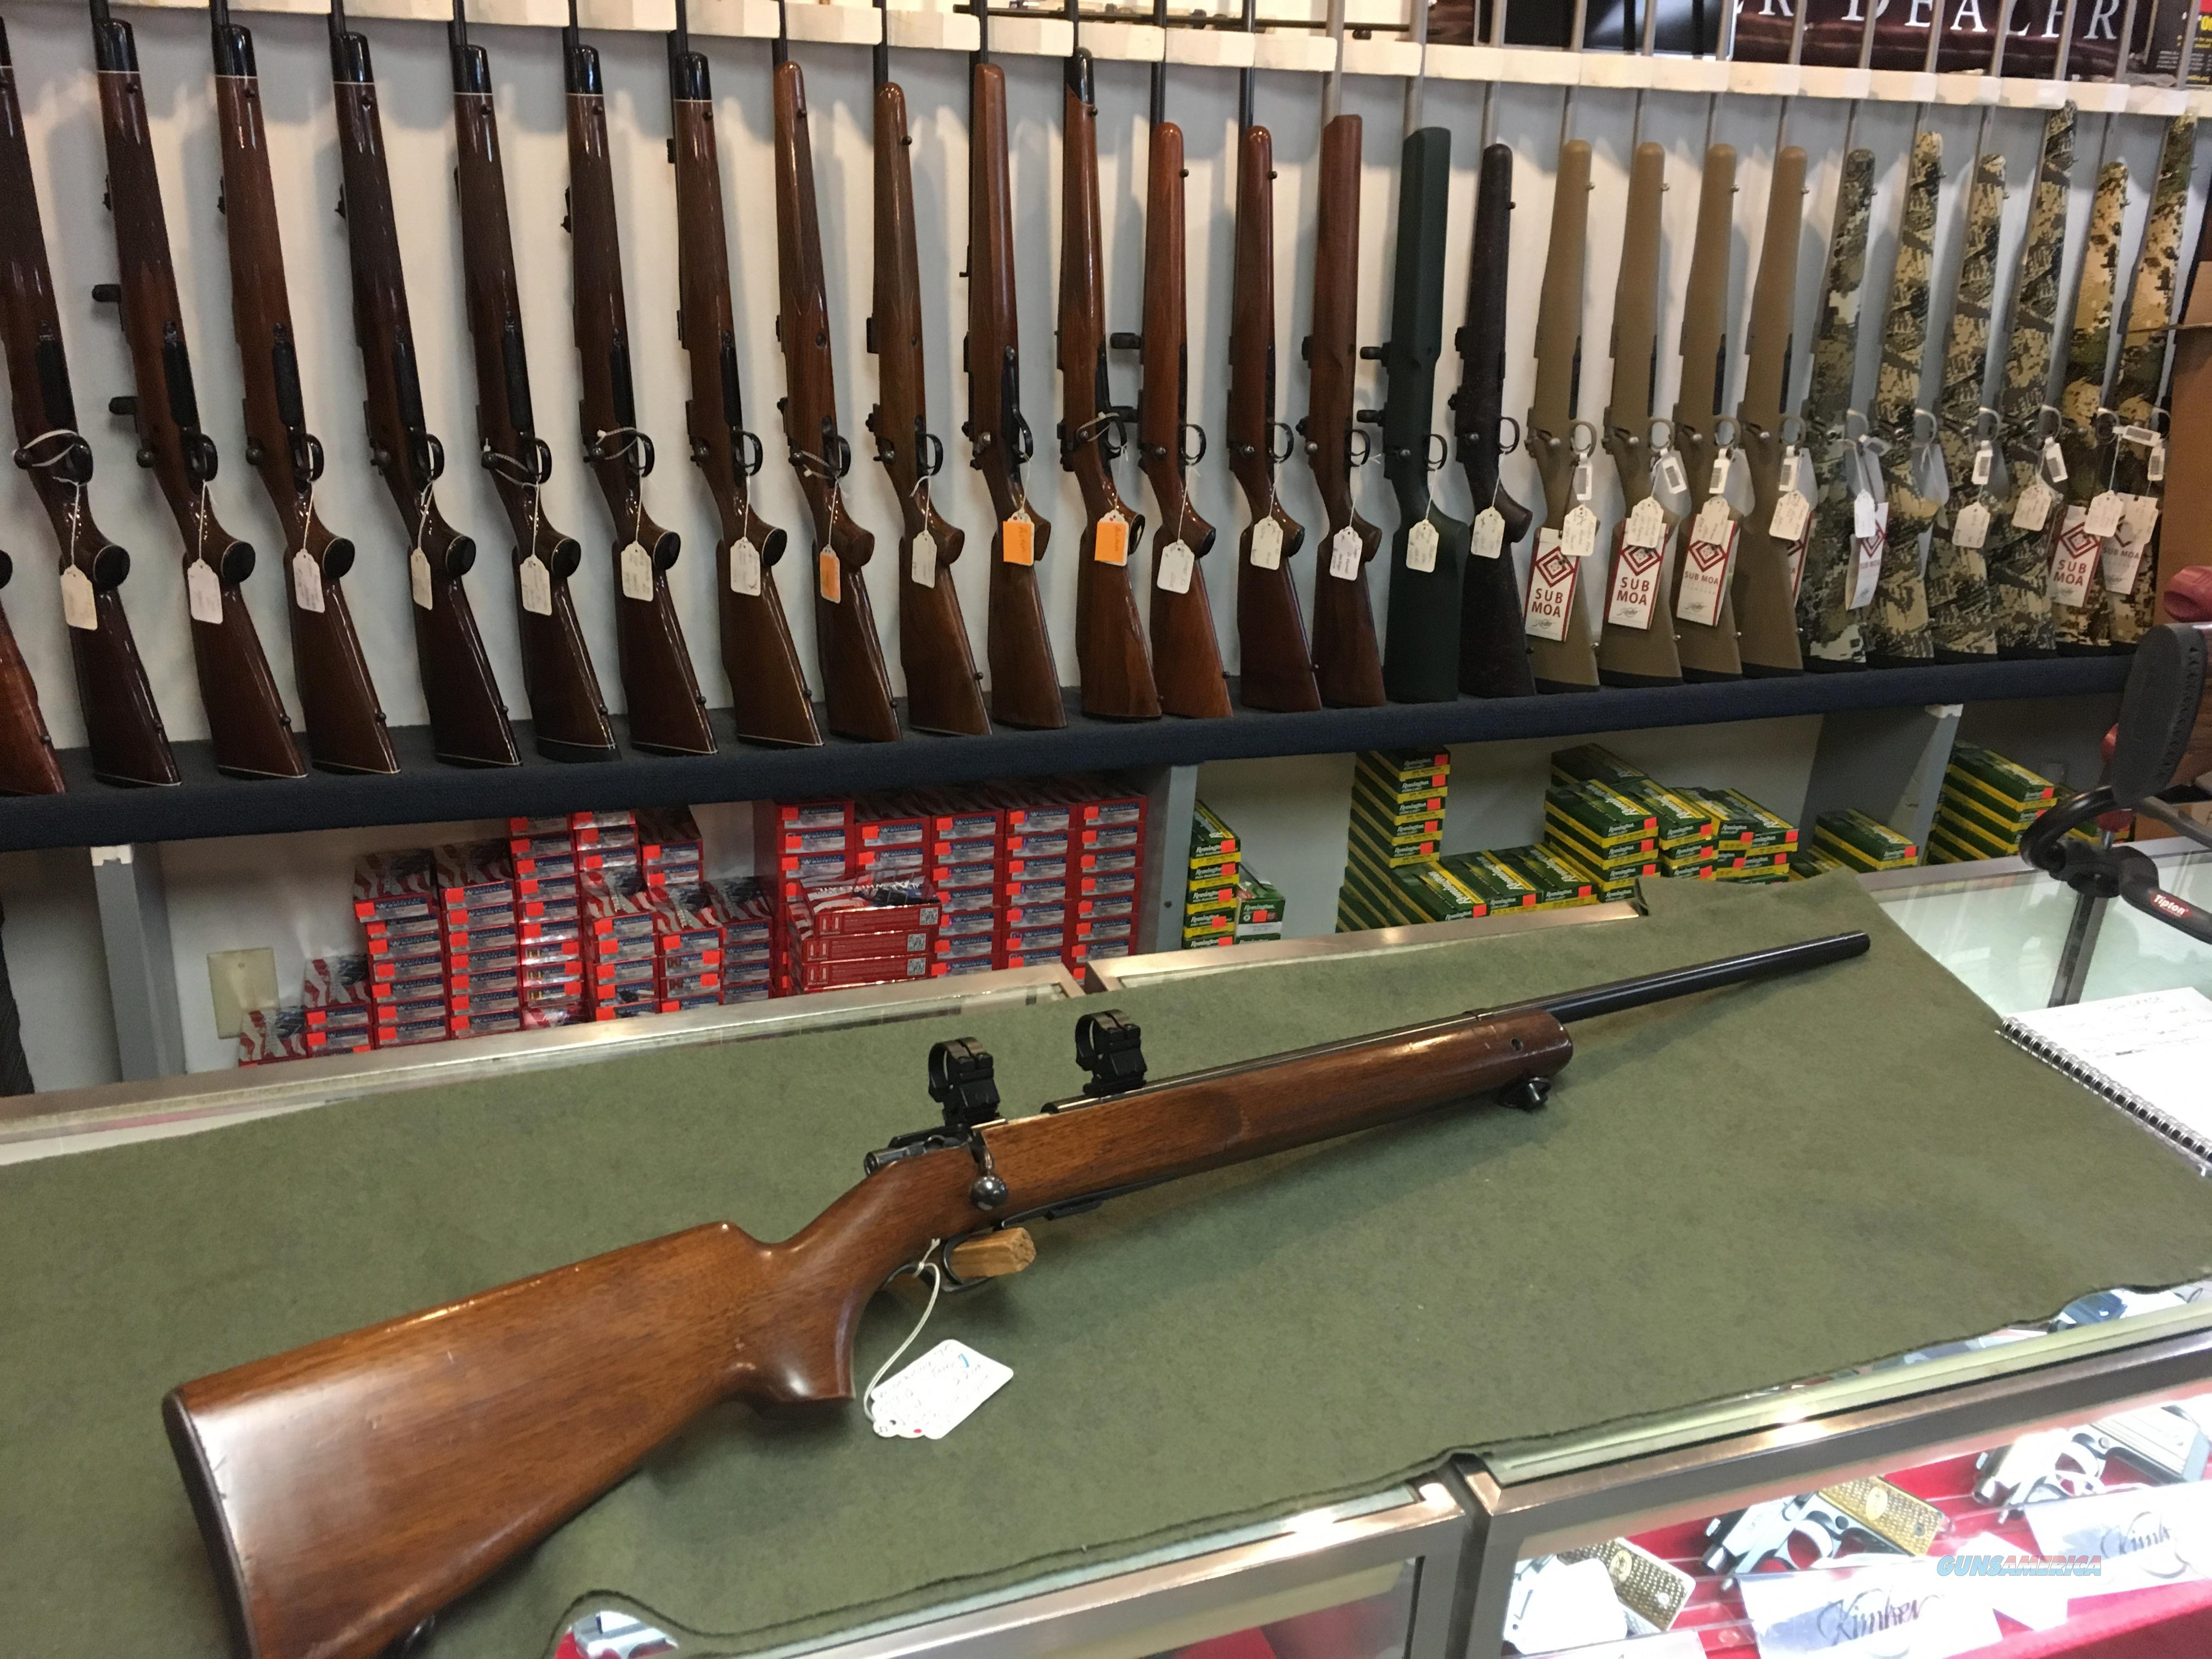 WINCHESTER 75 TARGET 22LR  Guns > Rifles > Winchester Rifles - Modern Bolt/Auto/Single > Other Bolt Action